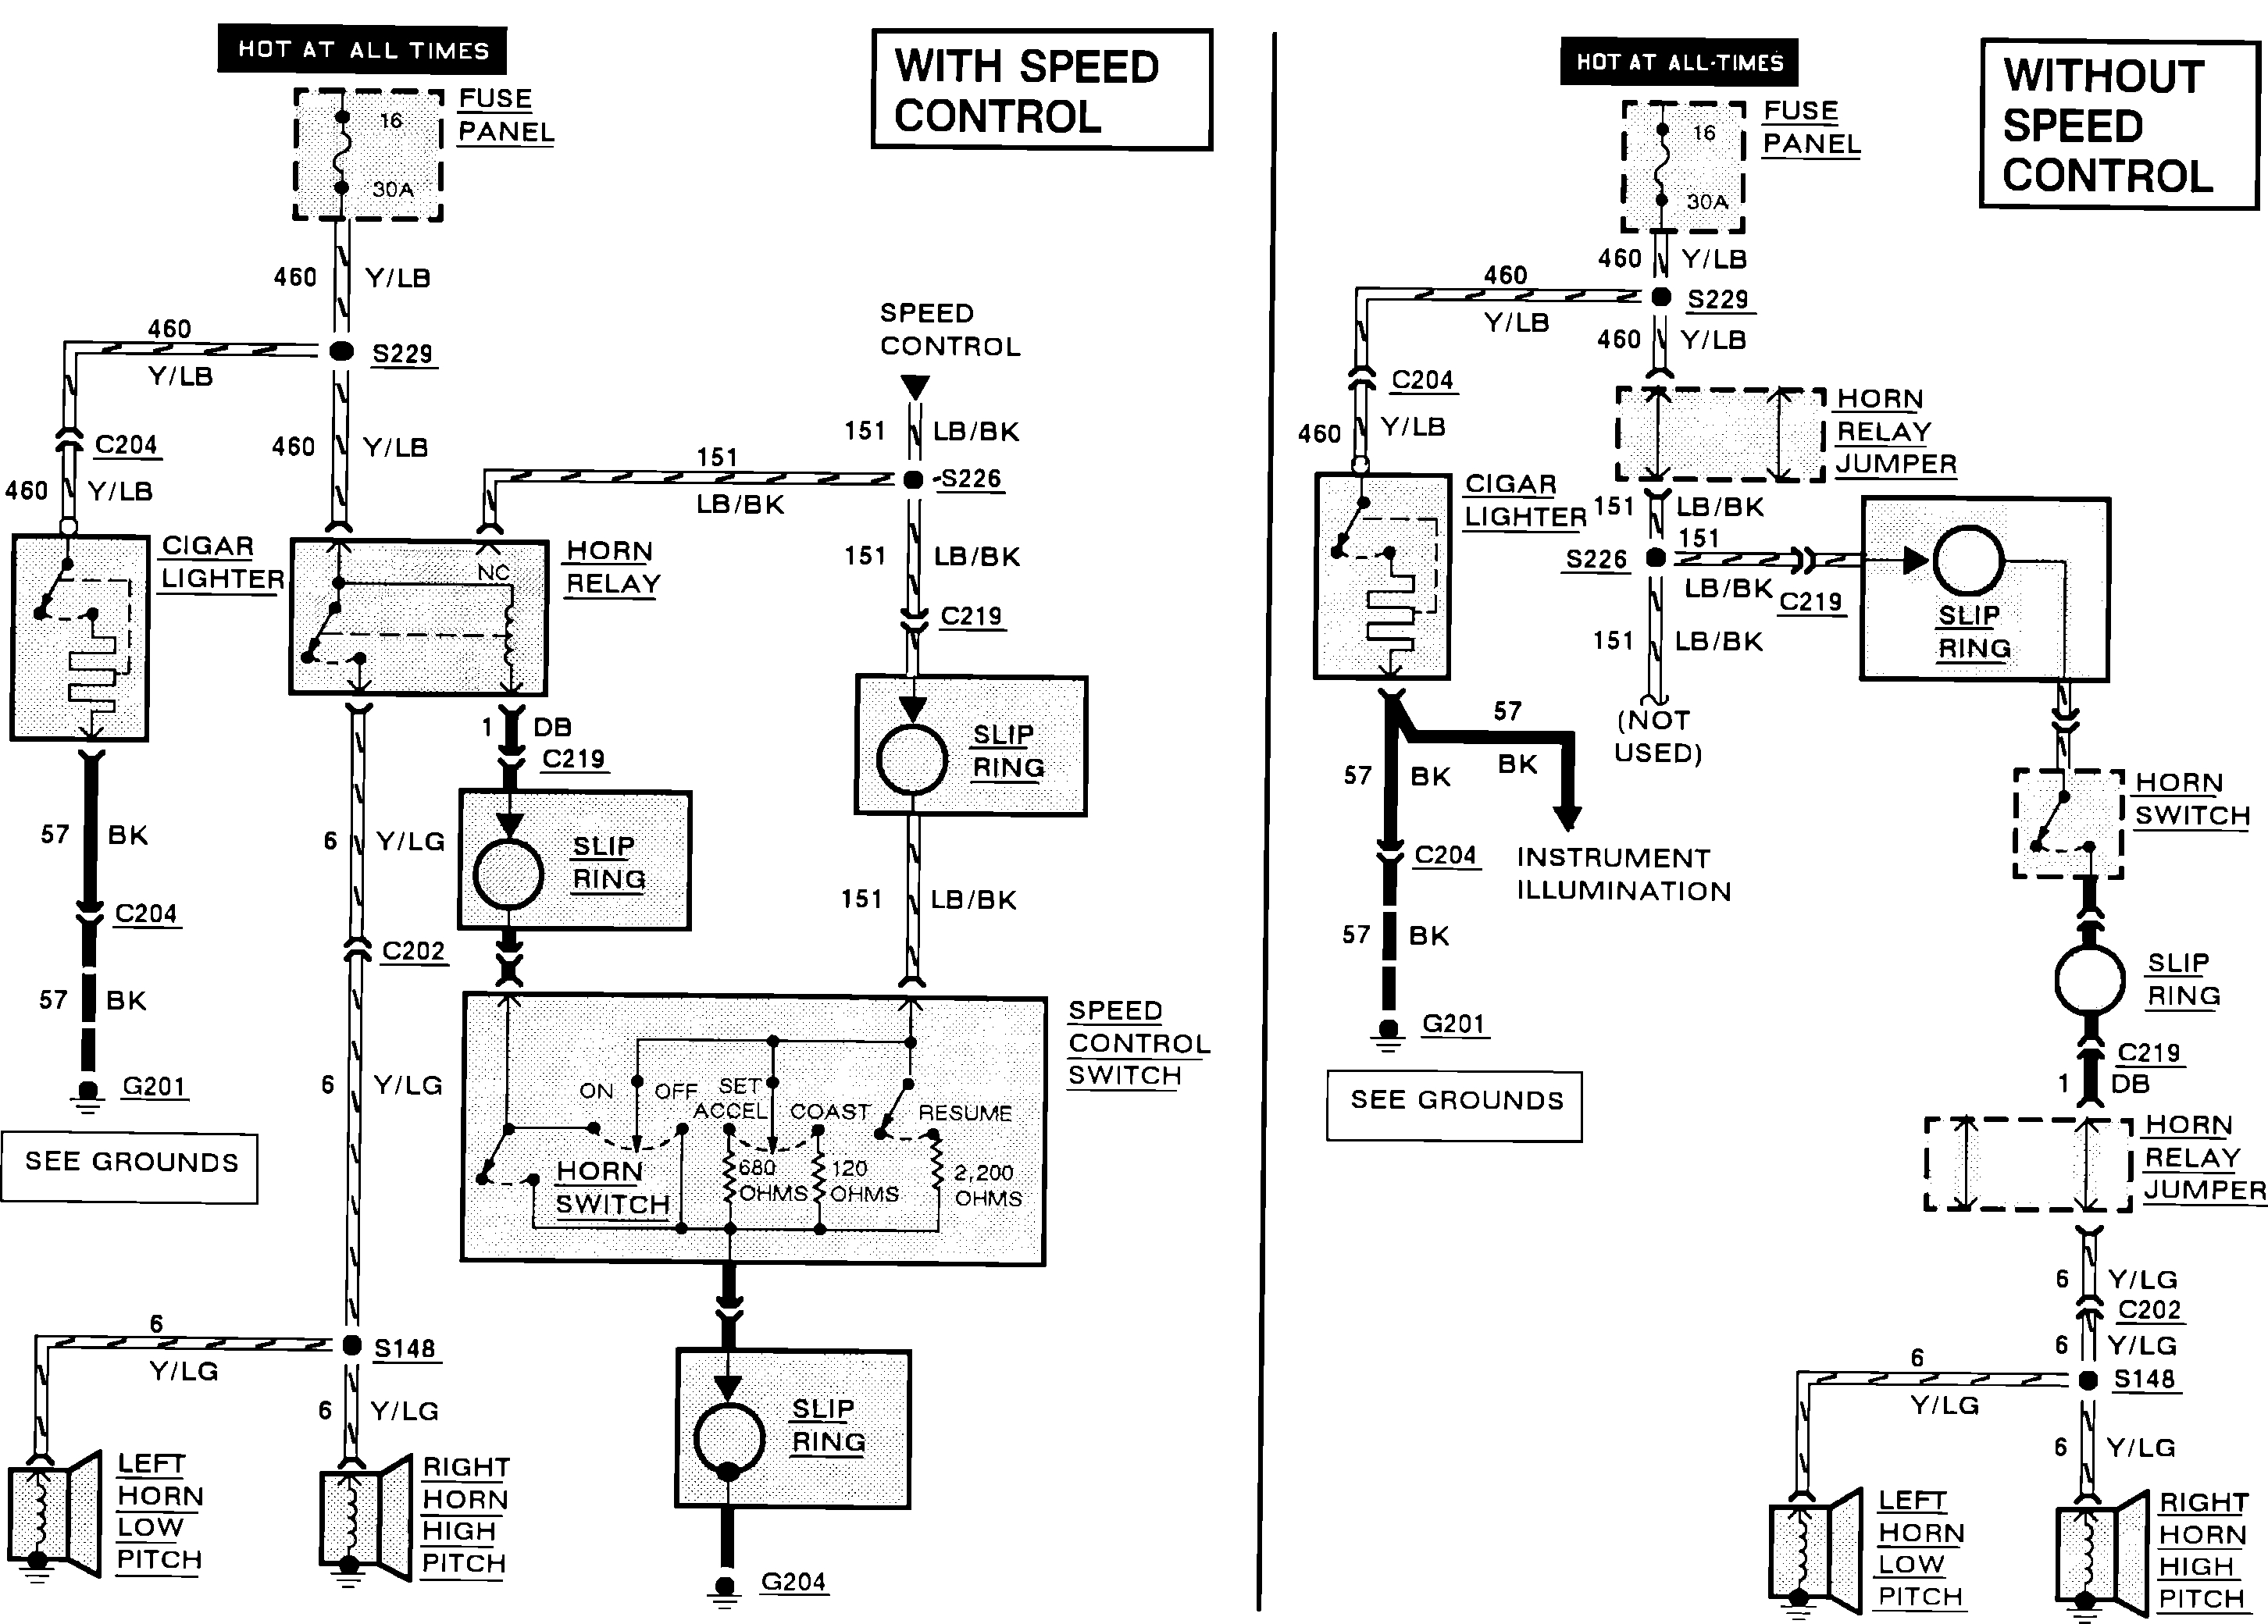 Horn Wiring Diagram Needed  Need Horn Wiring Diagram So I